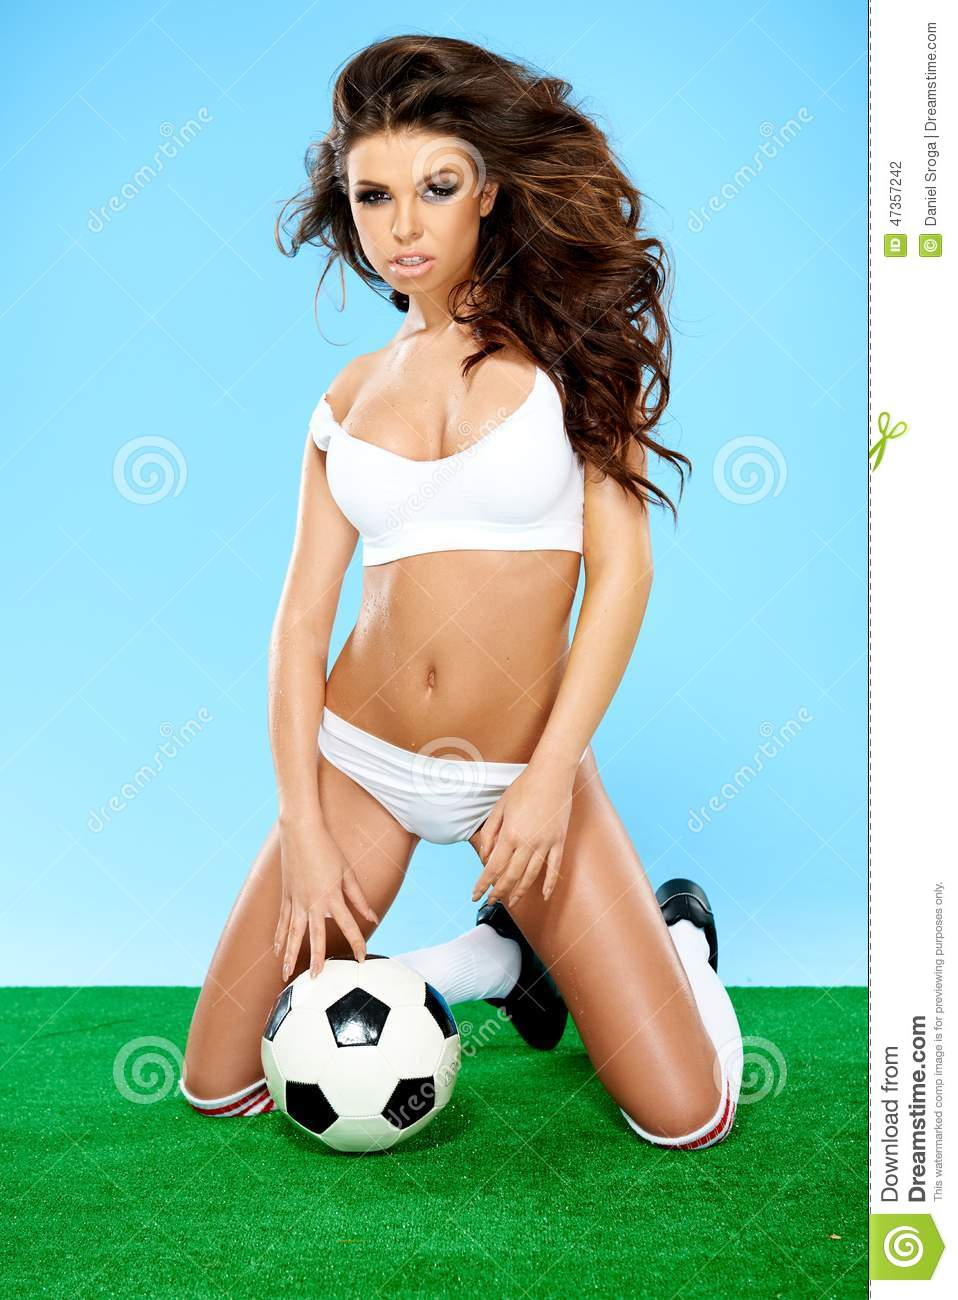 Close up Young Woman with Long Wavy Hair Wearing White Underwear Posing with  Soccer Ball While Kneeling on the Floor Seductively. c94b3dc5a